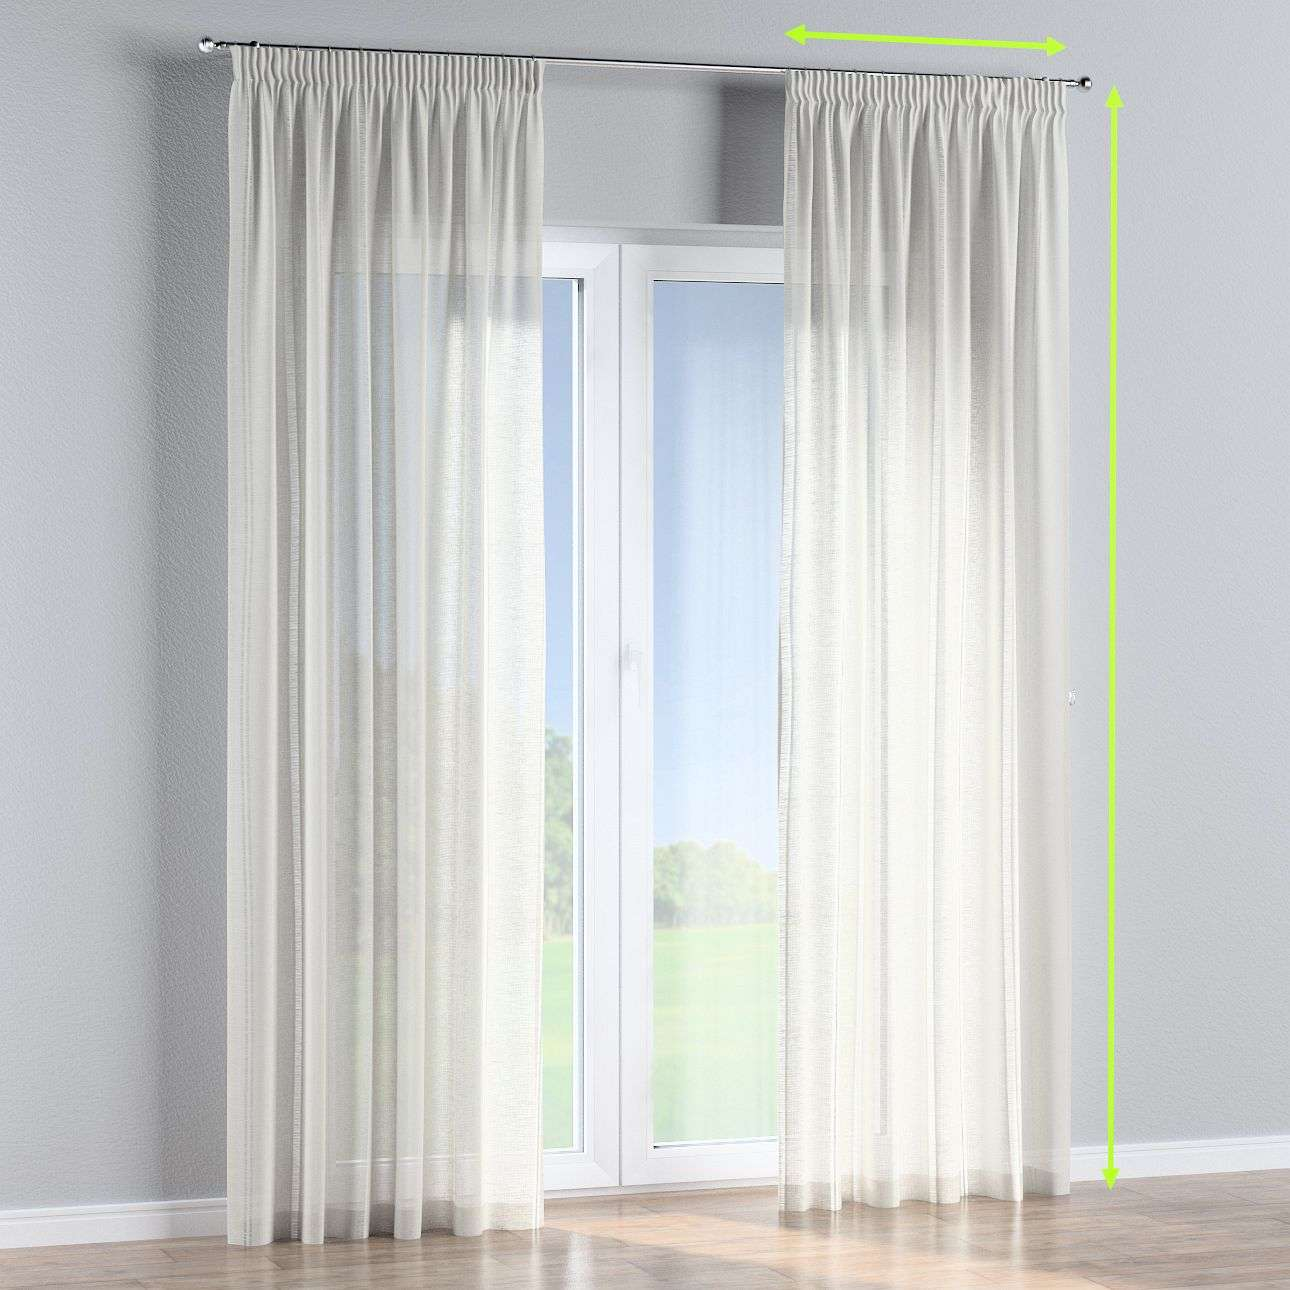 Pencil pleat curtains in collection Romantica, fabric: 141-30